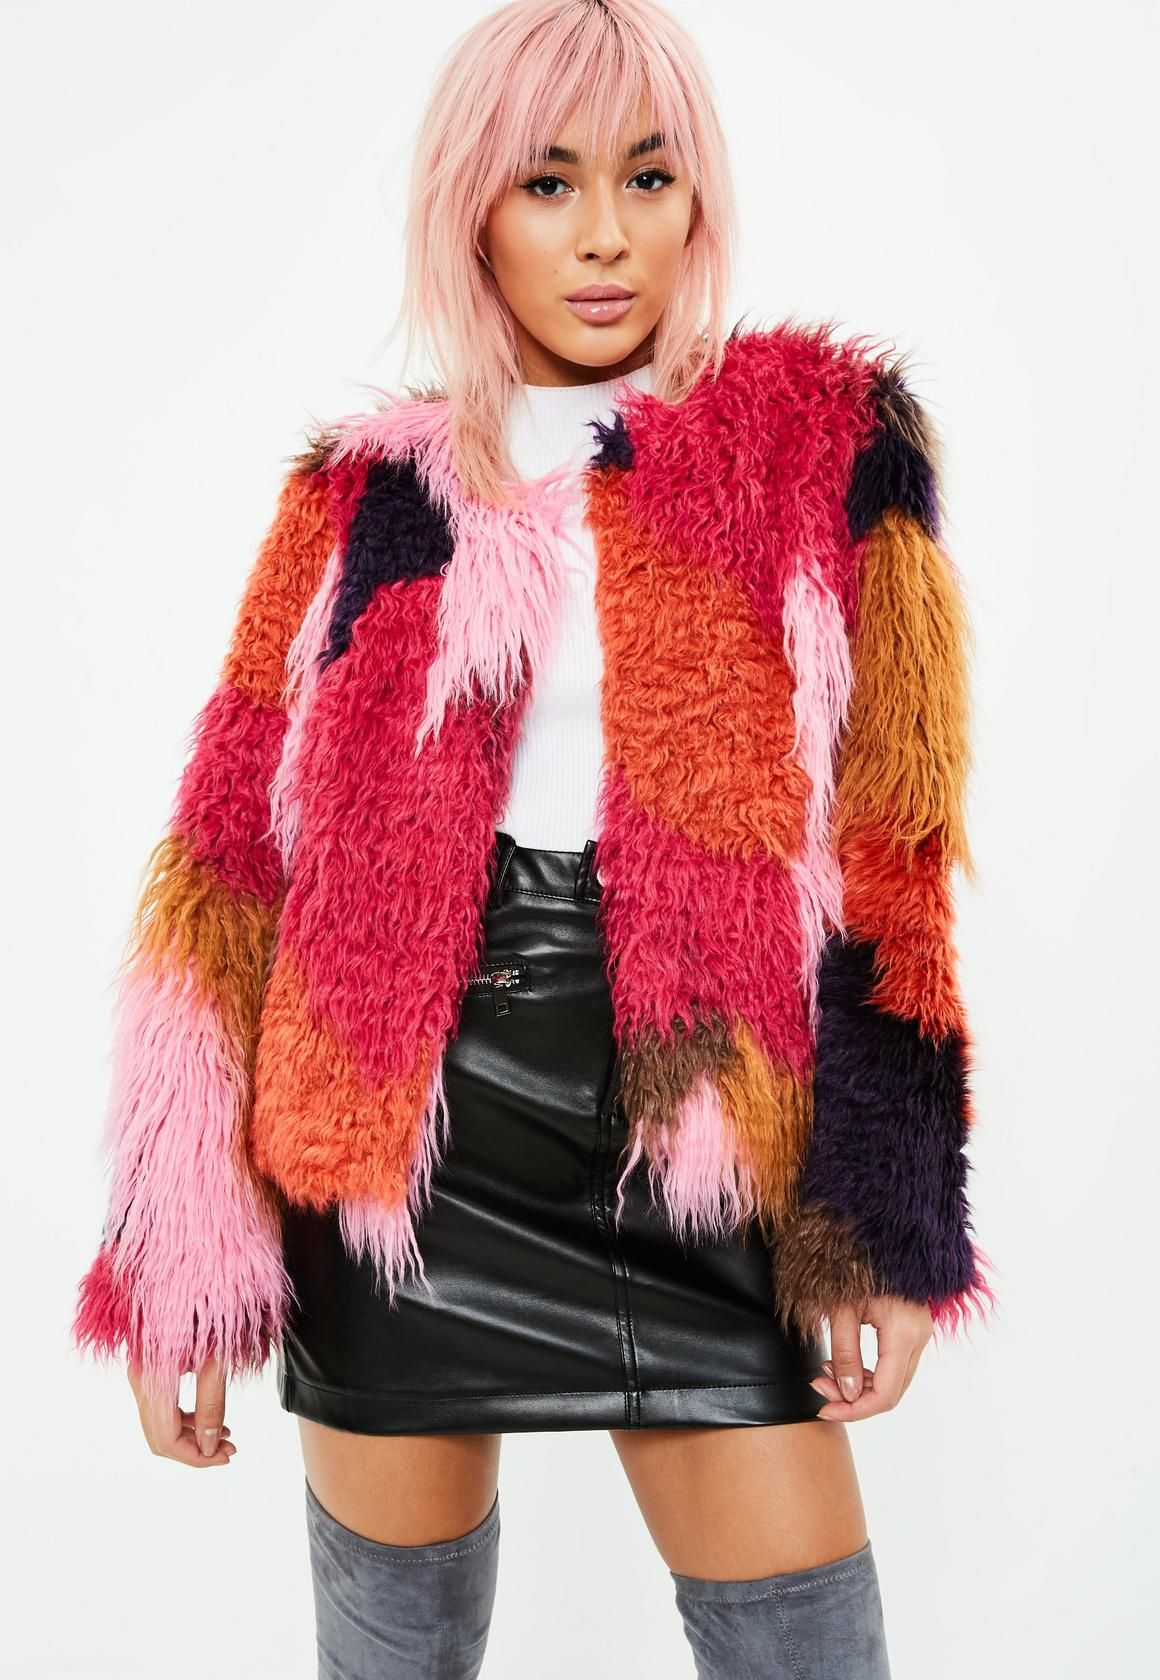 a2f9af8870 Missguided - Red Patch Work Faux Fur Coat | c l o t h i n g ...